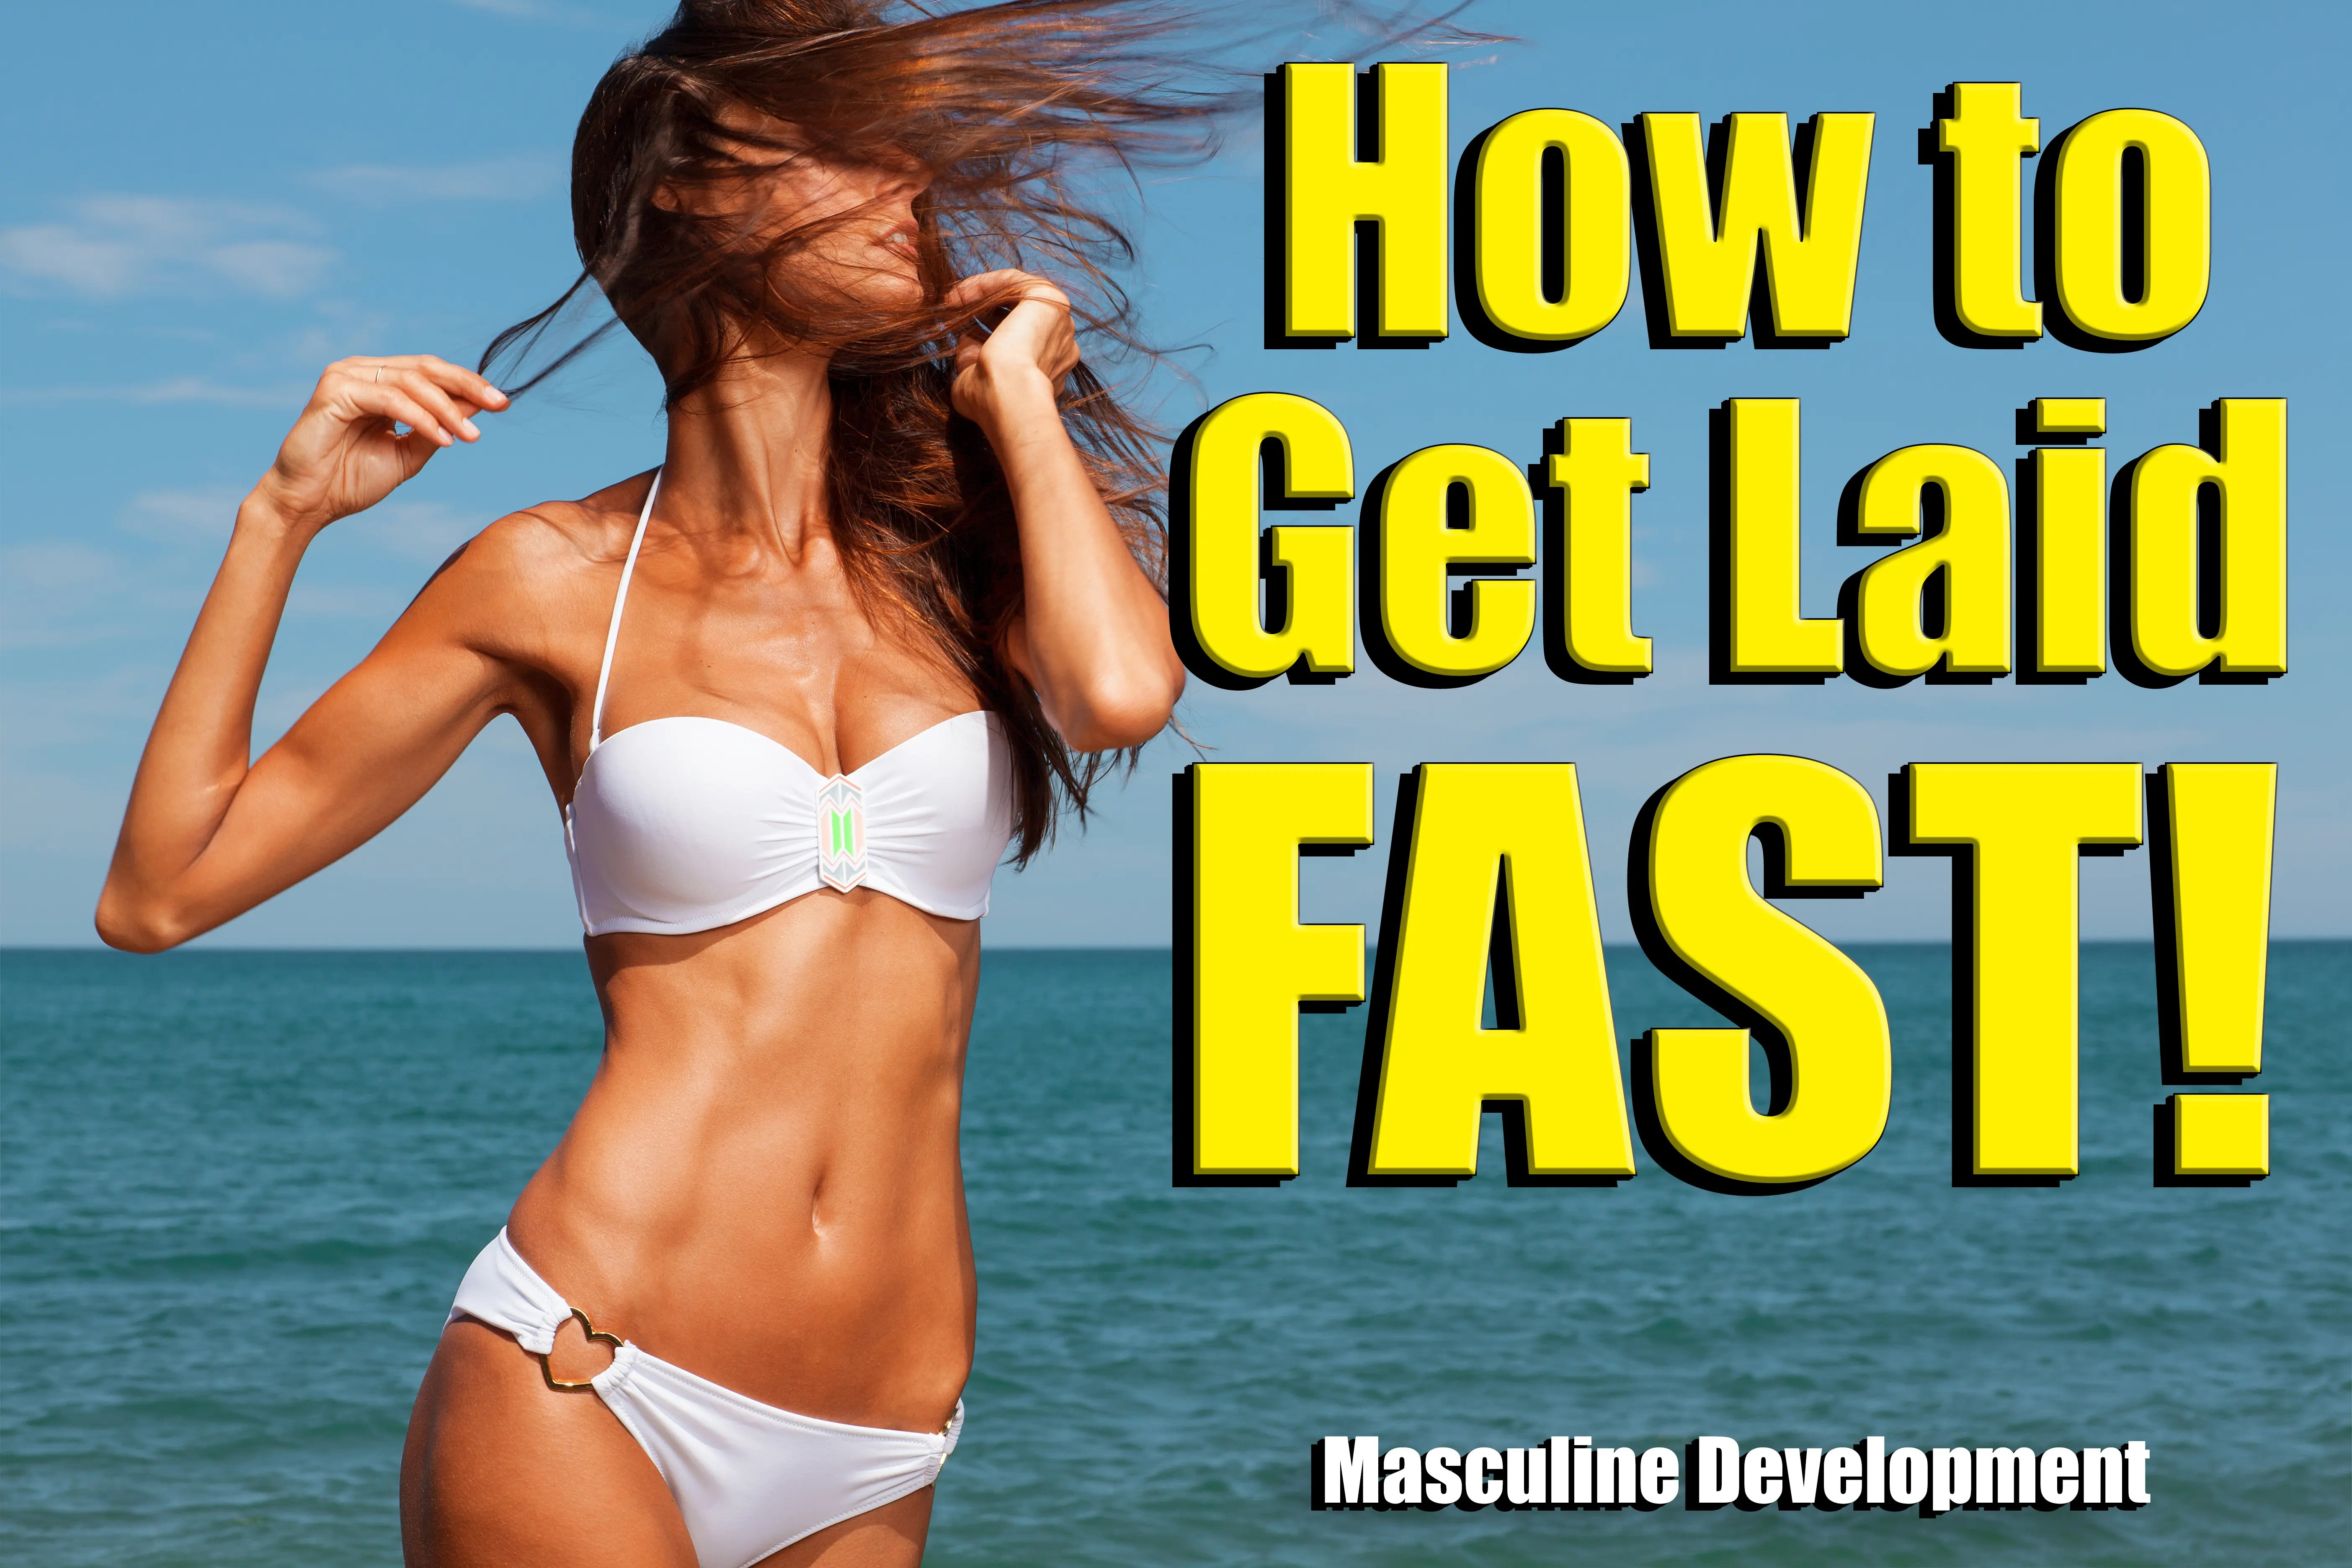 Get laid fast